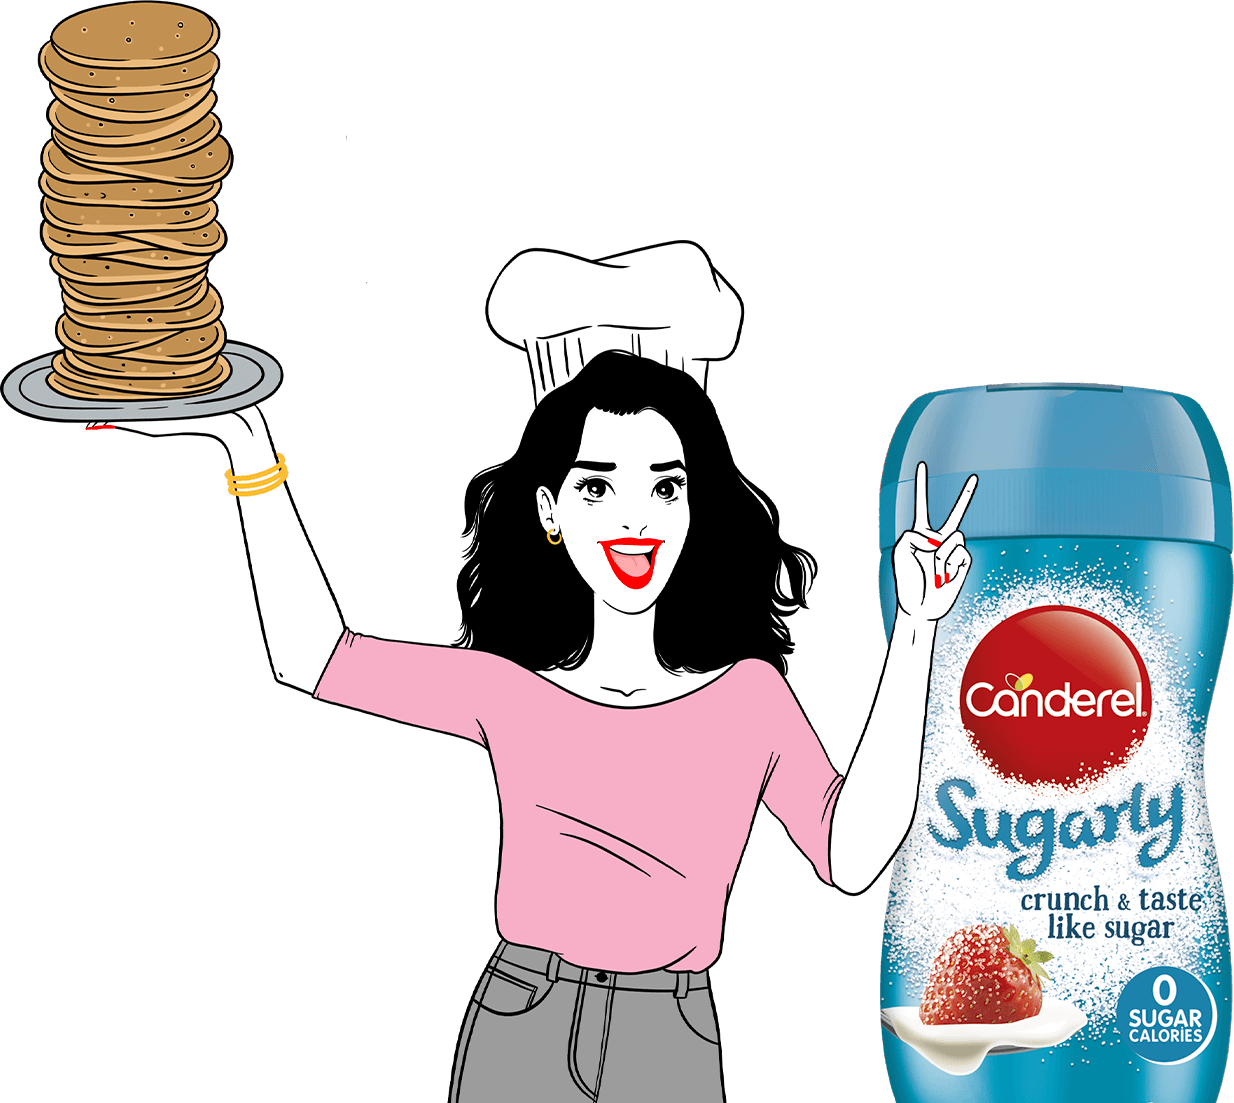 Canderella holding a plate stacked high with pancakes next to Canderel Sugarly